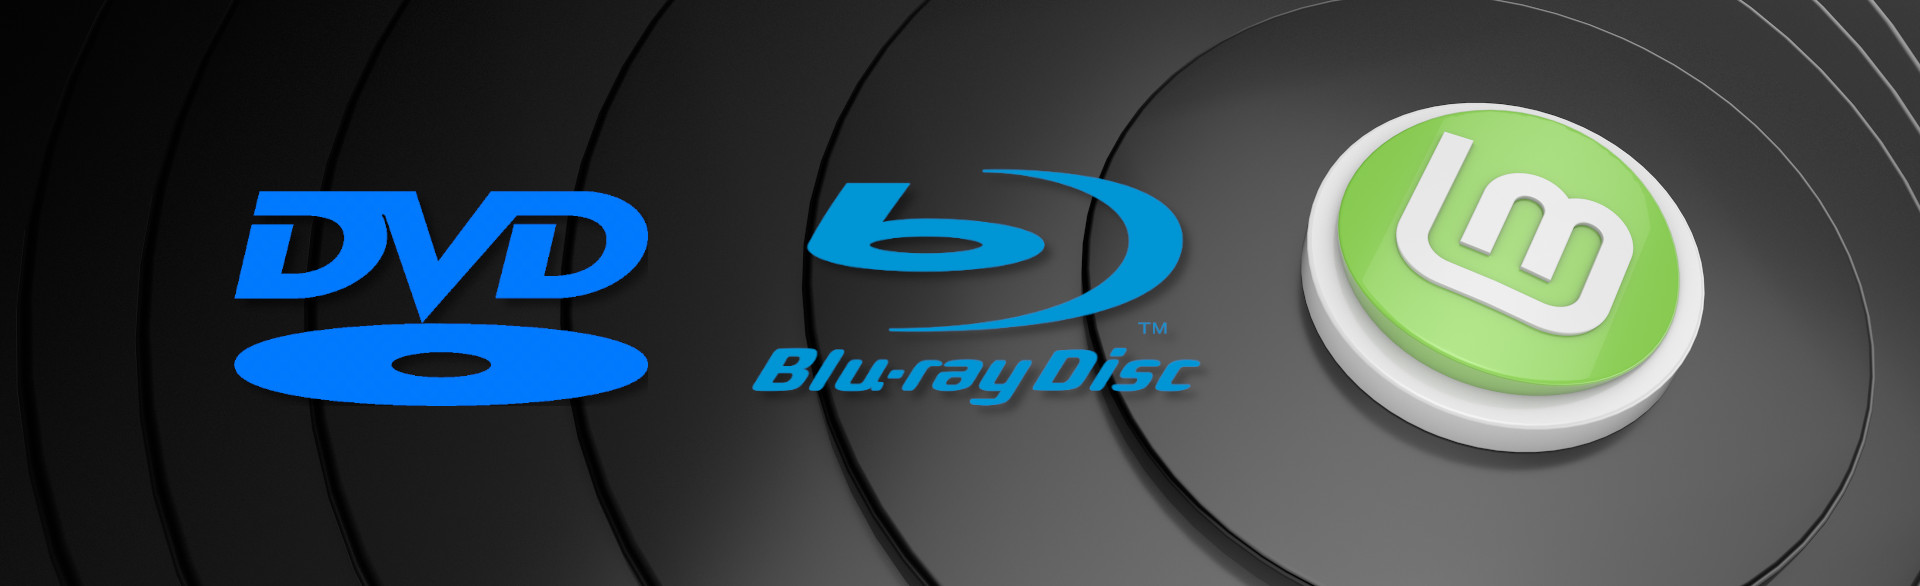 vedere dvd e blu-ray in linux mint